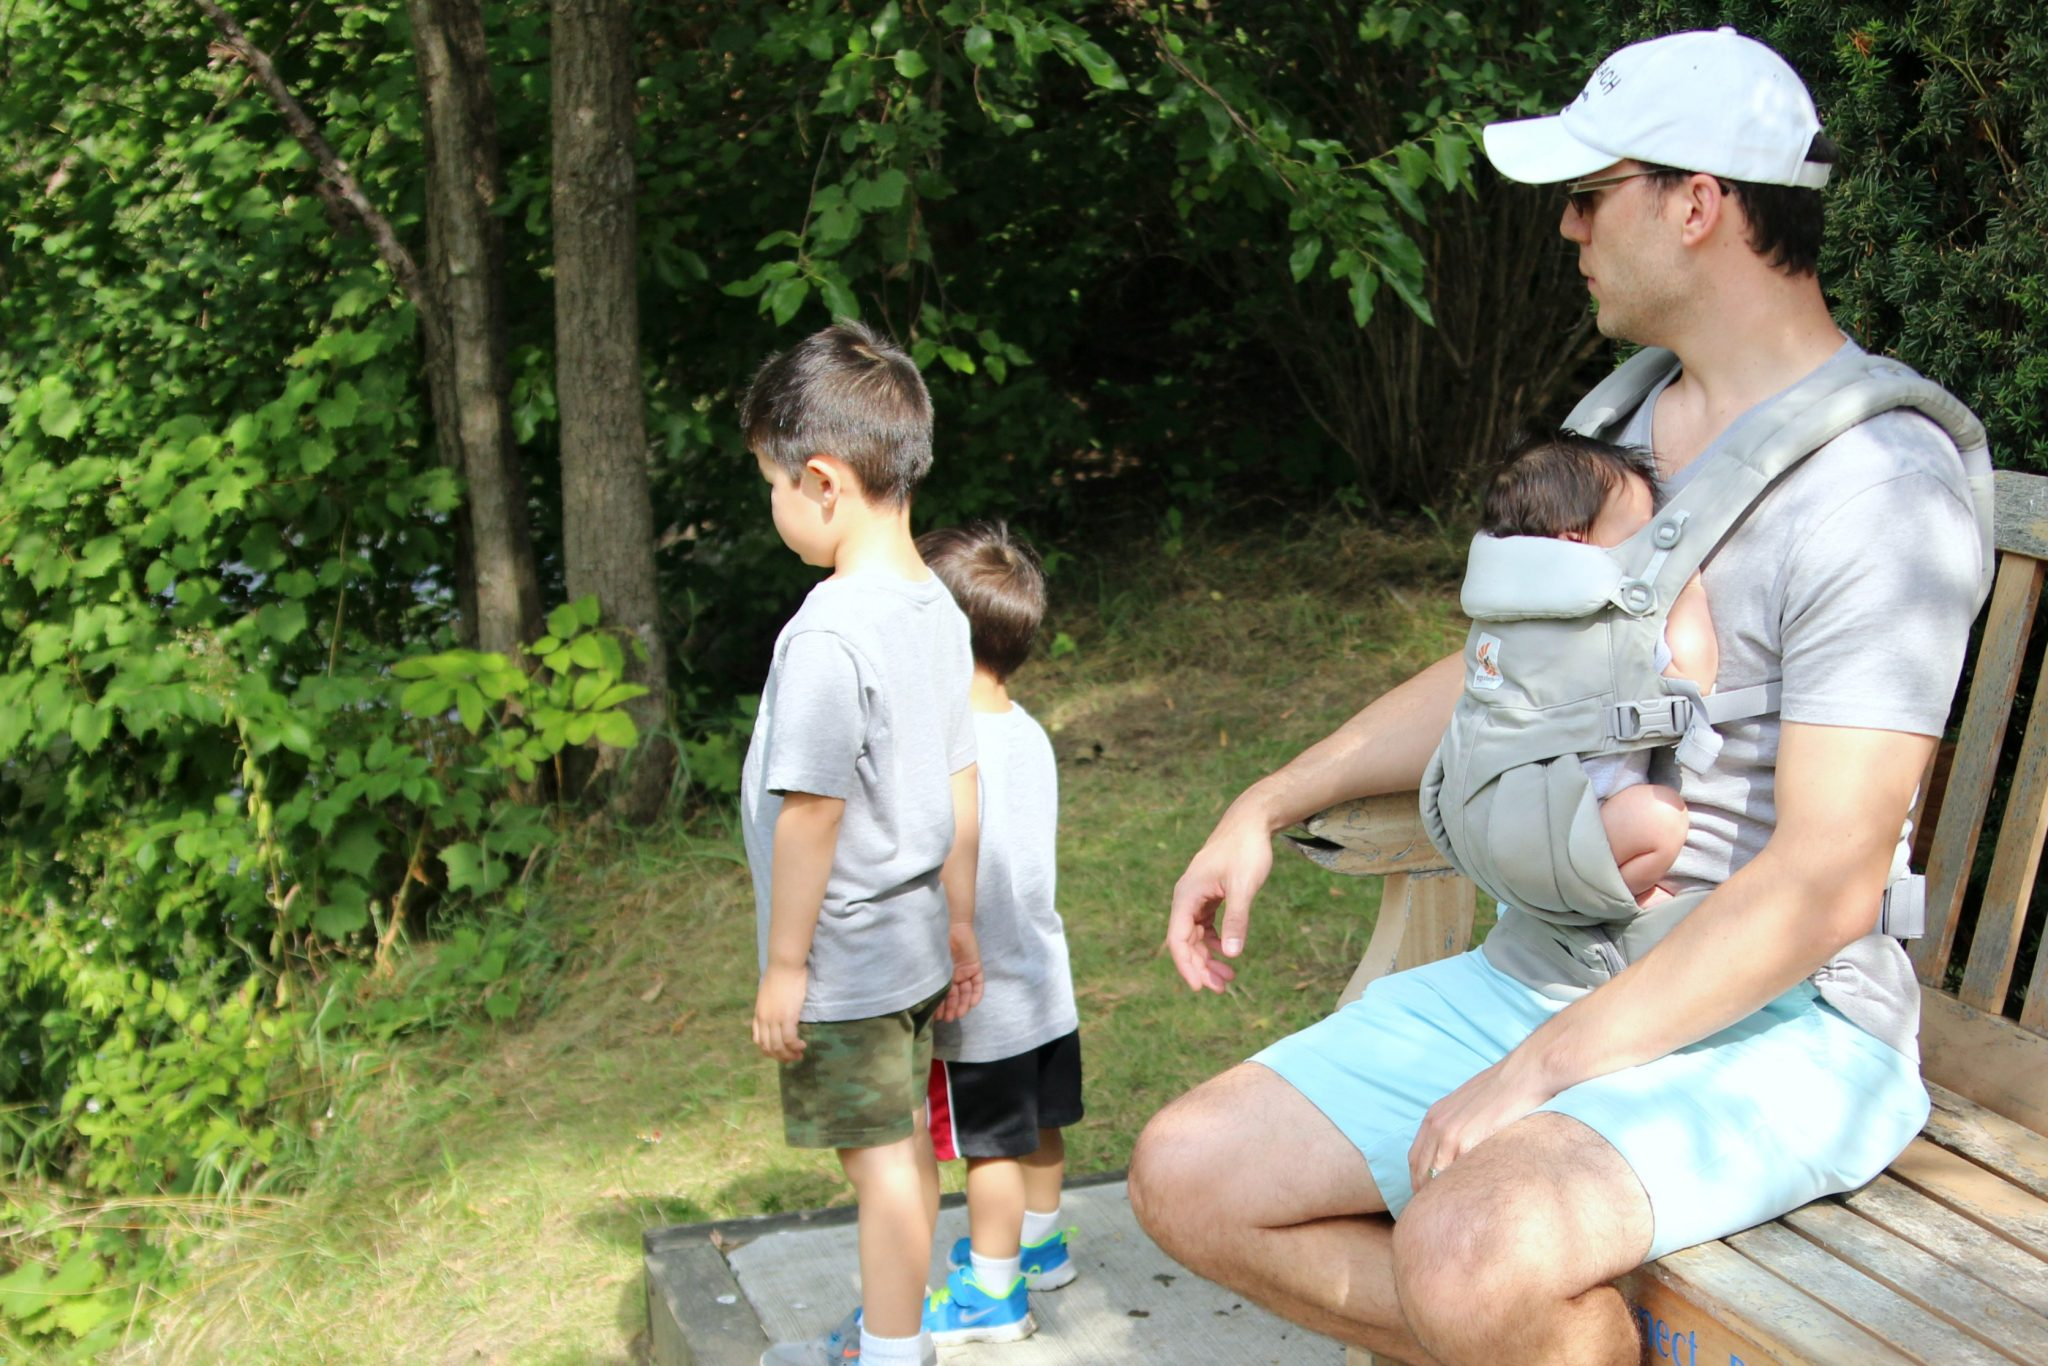 dads, dads and kids, bonding with dad